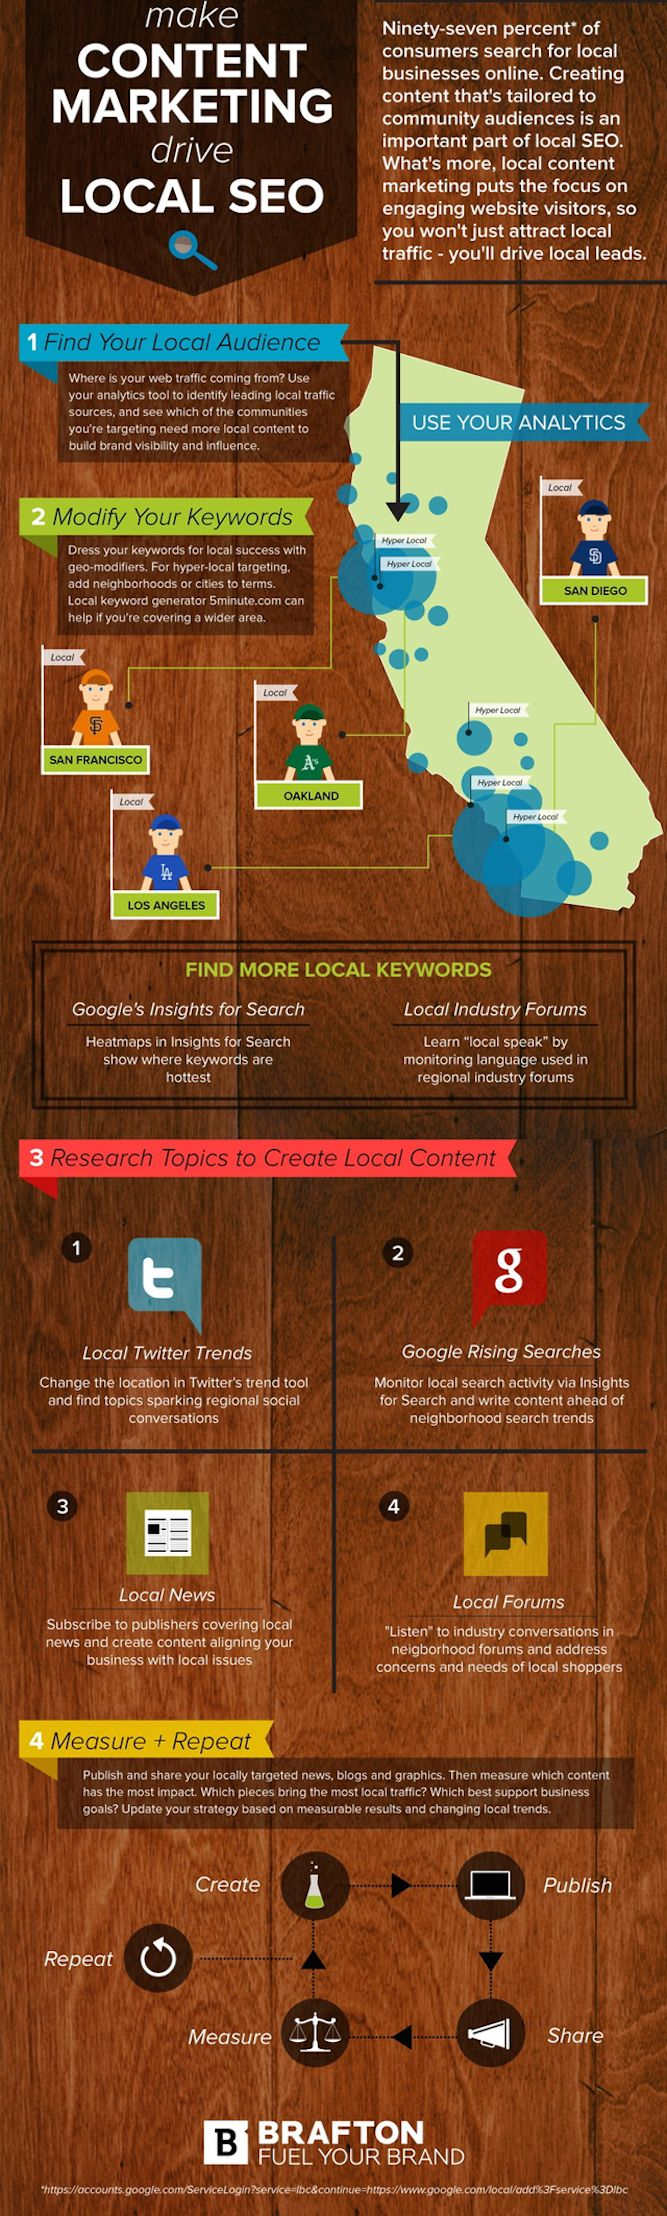 Cómo hacer que el Marketing de Contenidos mejore tu #SEO Local #infografia #infographic: Contentmarketing, Social Media, Local Seo, Marketing Drive, Content Marketing, Drive Local, Seo Infographic, Local Search